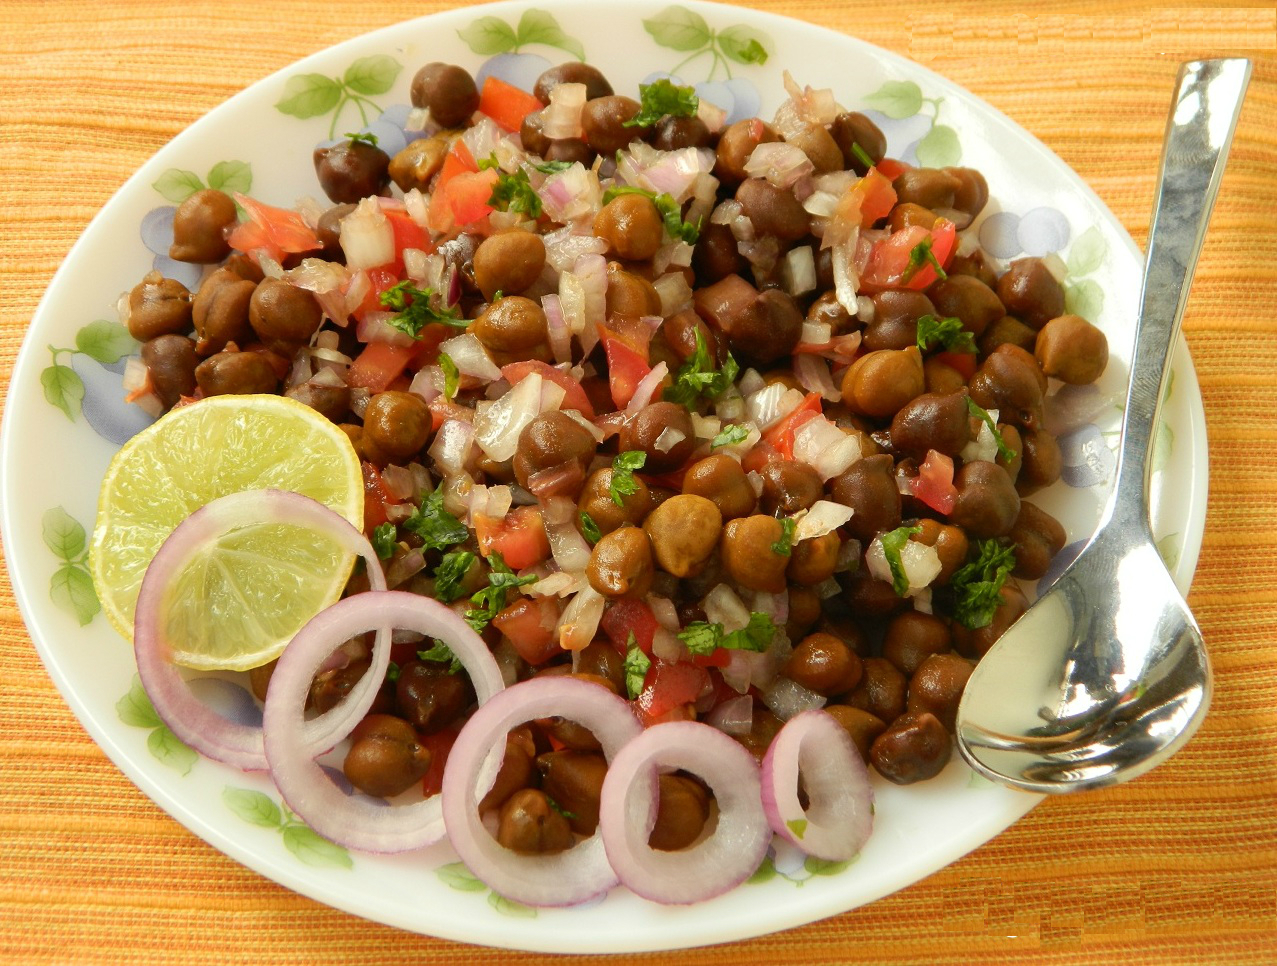 kala-chana-black-gran-salad.jpg